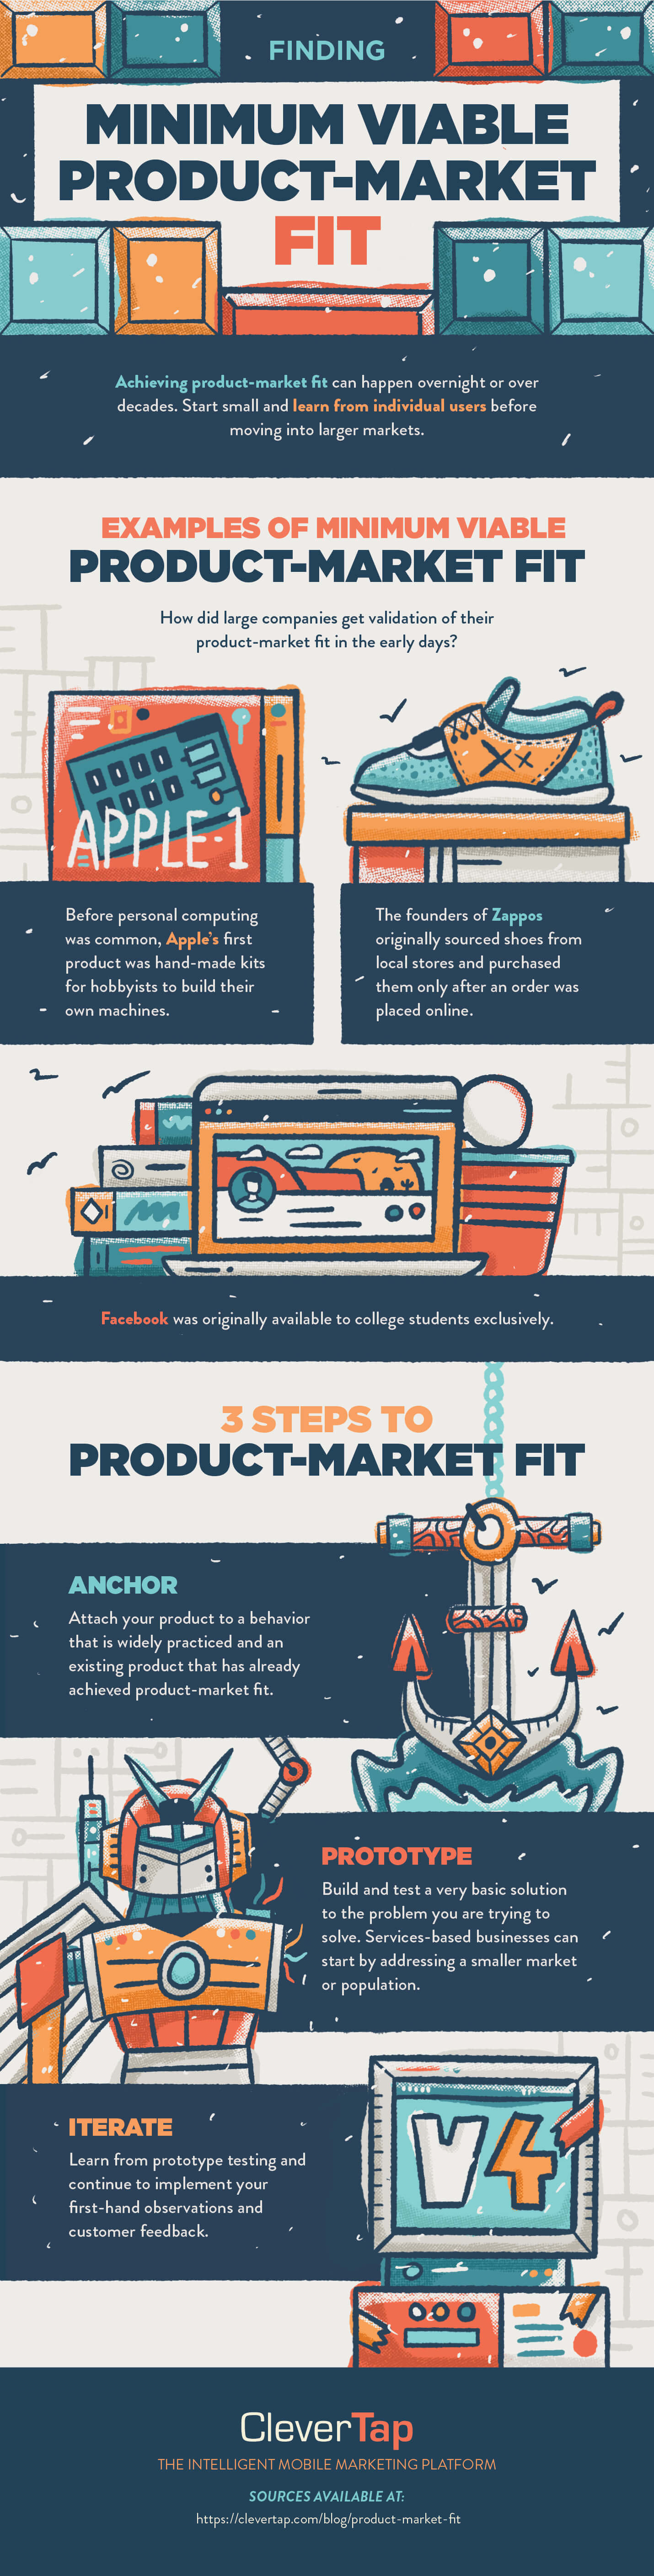 finding minimum viable product market fit infographic